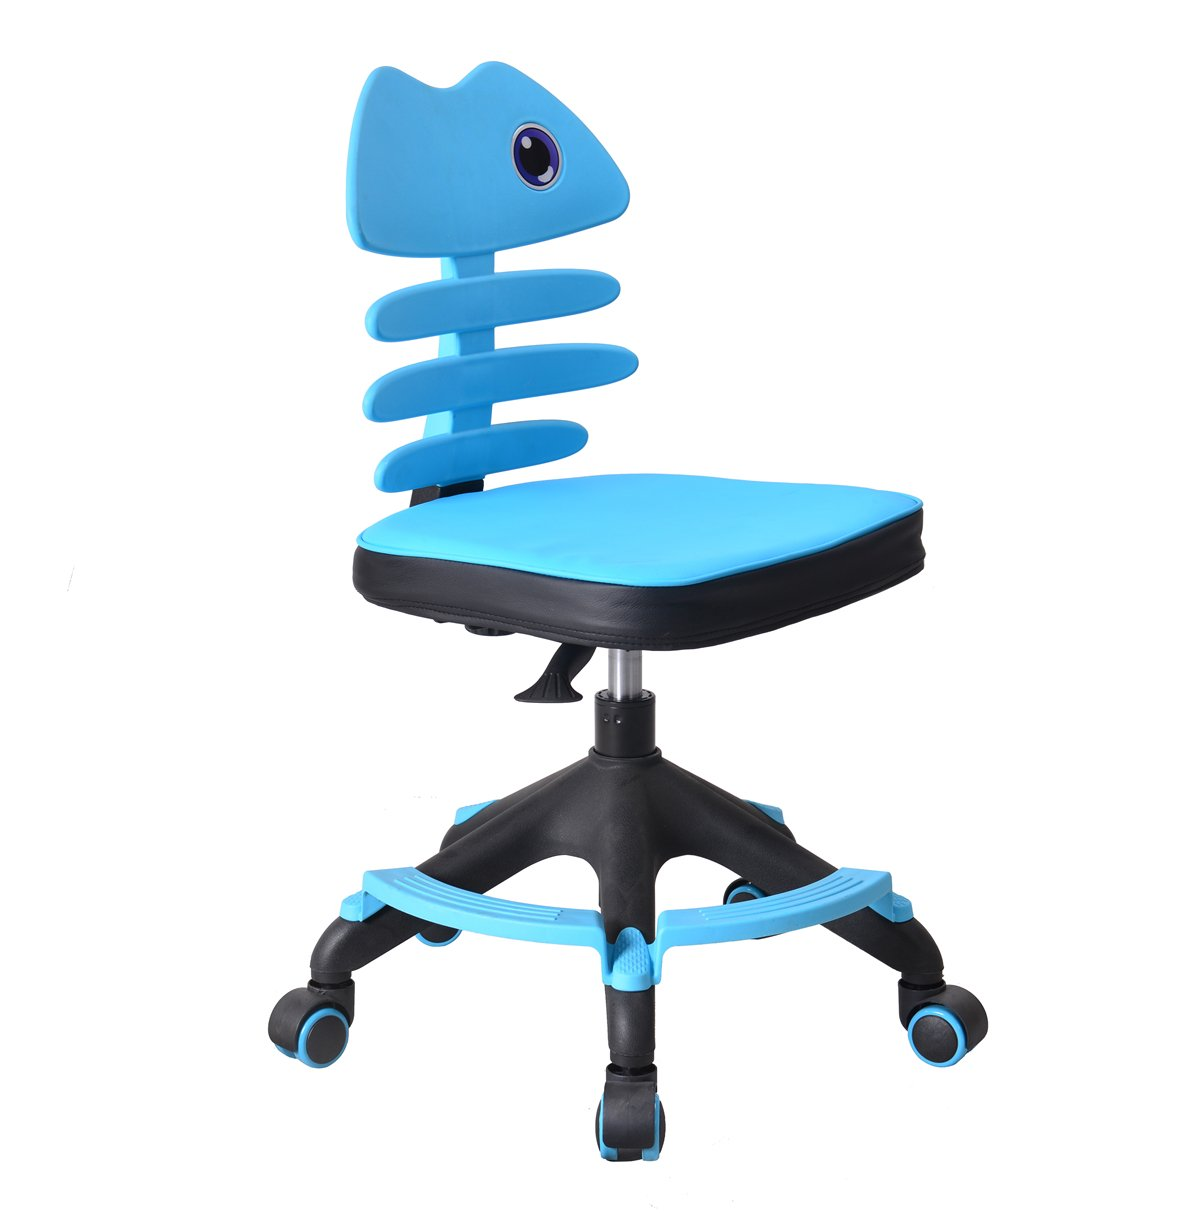 Irene House Teens Children Kids Desk Table Chair with Footrest and Soft Seat Mat (Light Blue)